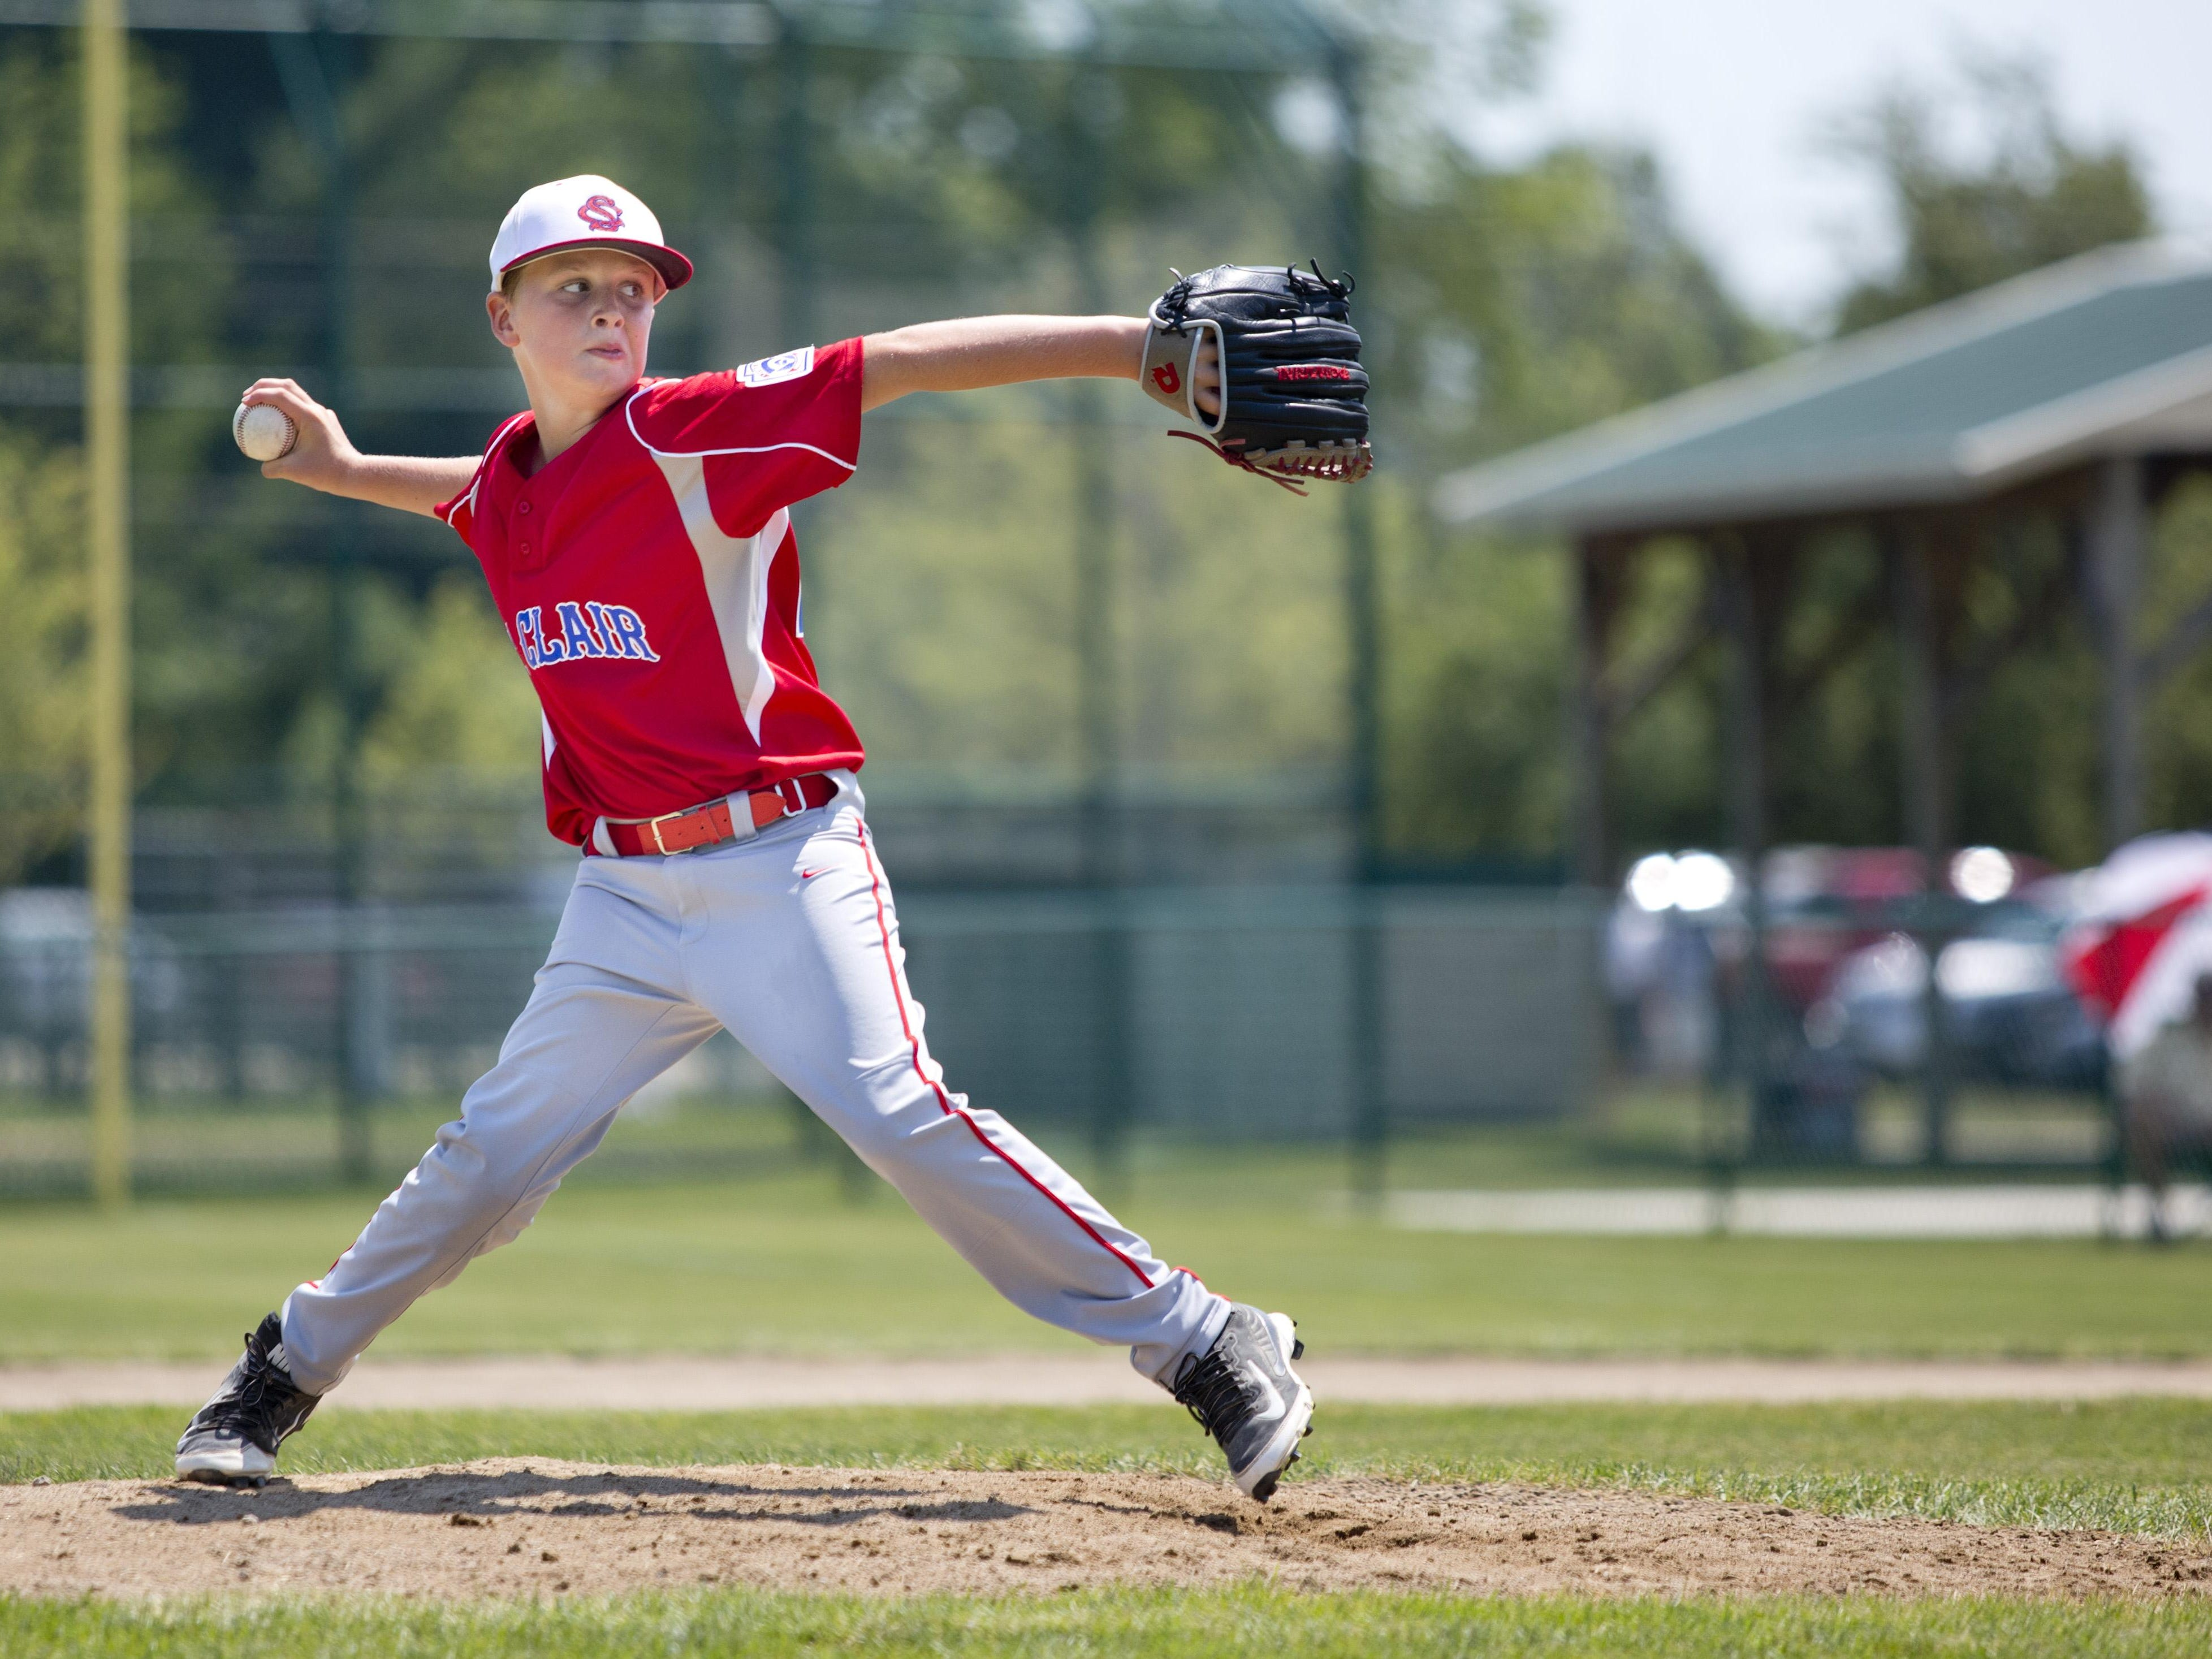 Carter Hurlburt throws a pitch during a 10-and-under state semifinal baseball game Tuesday, July 28, 2015 in St. Clair.